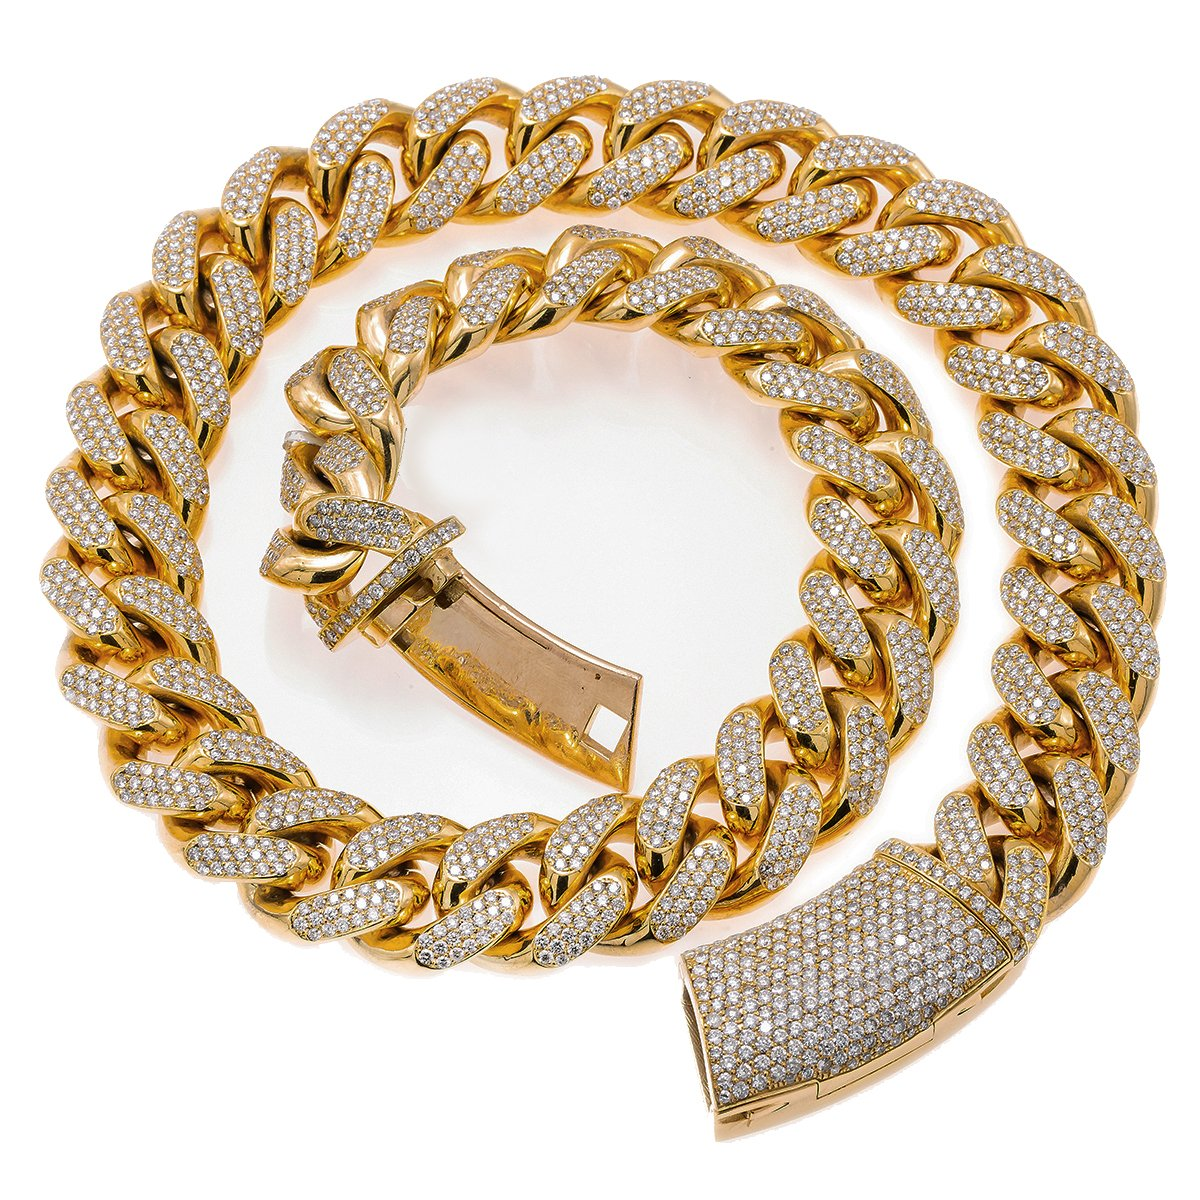 "10K Yellow Gold 22"" Cuban Chain With 35.75 CT Diamonds"